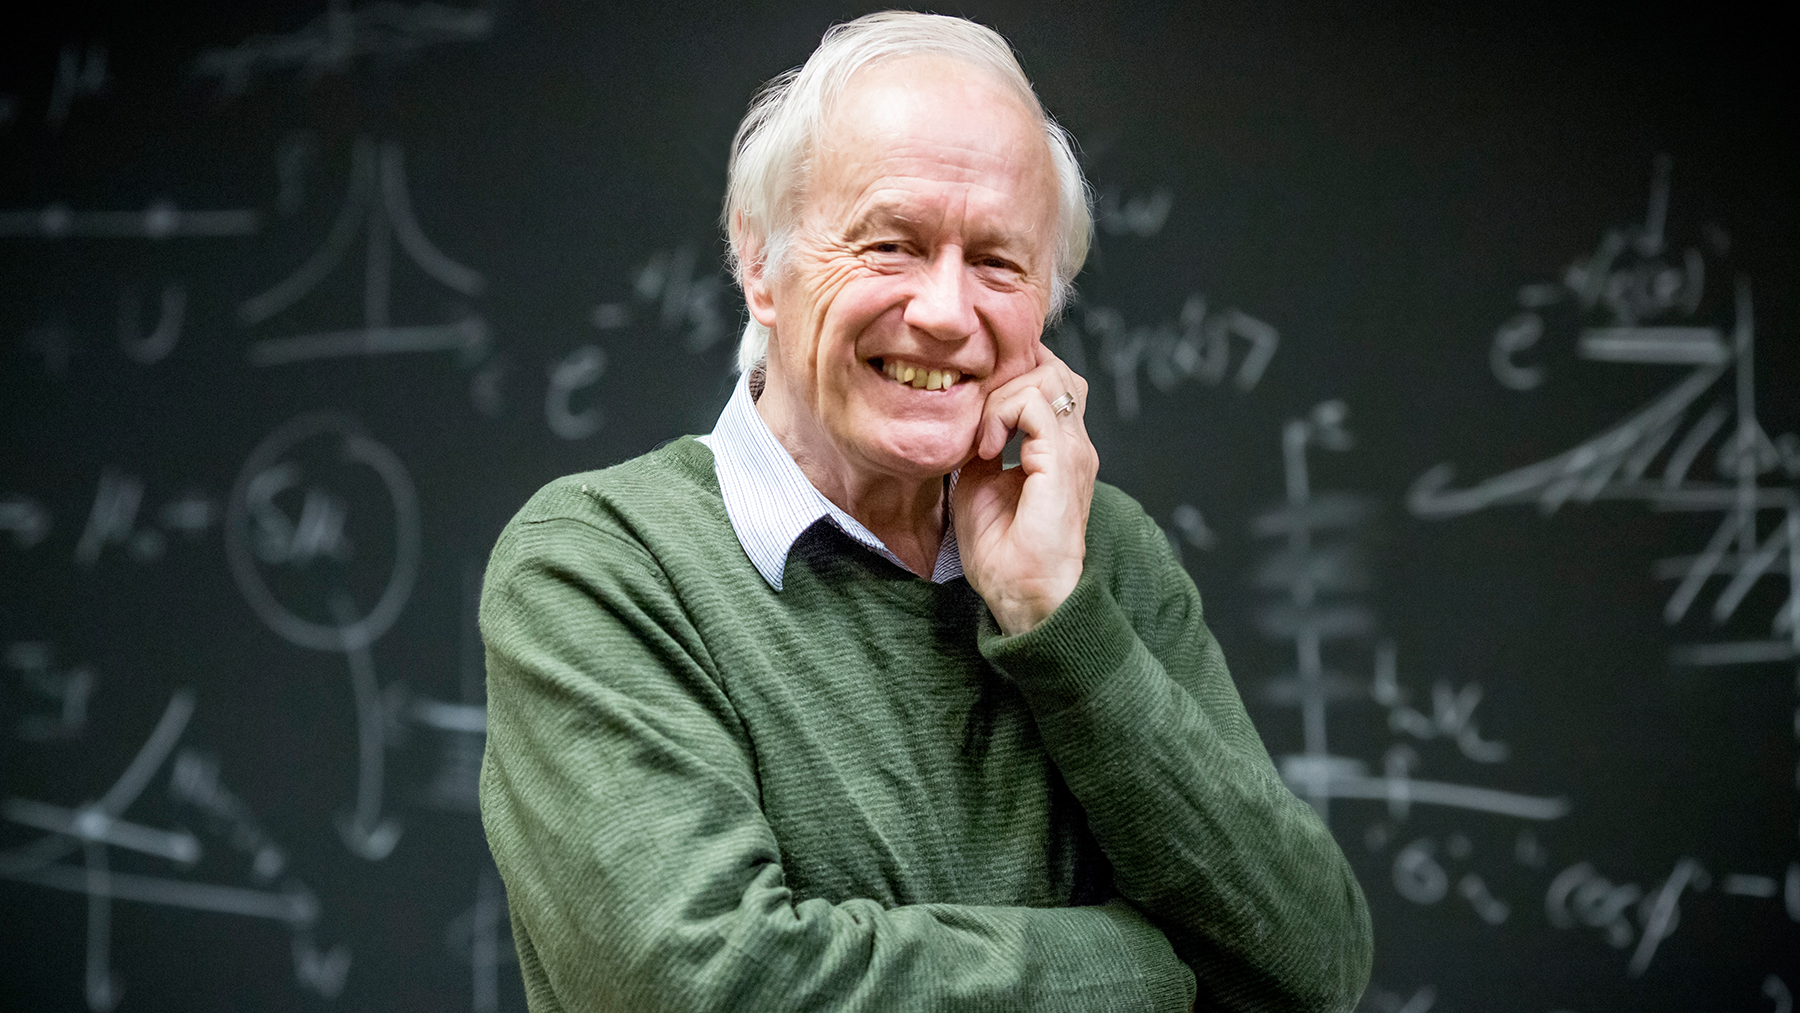 physics professor, Nobel Prize winner Sir Anthony Leggett. Photo by L. B. Stauffer